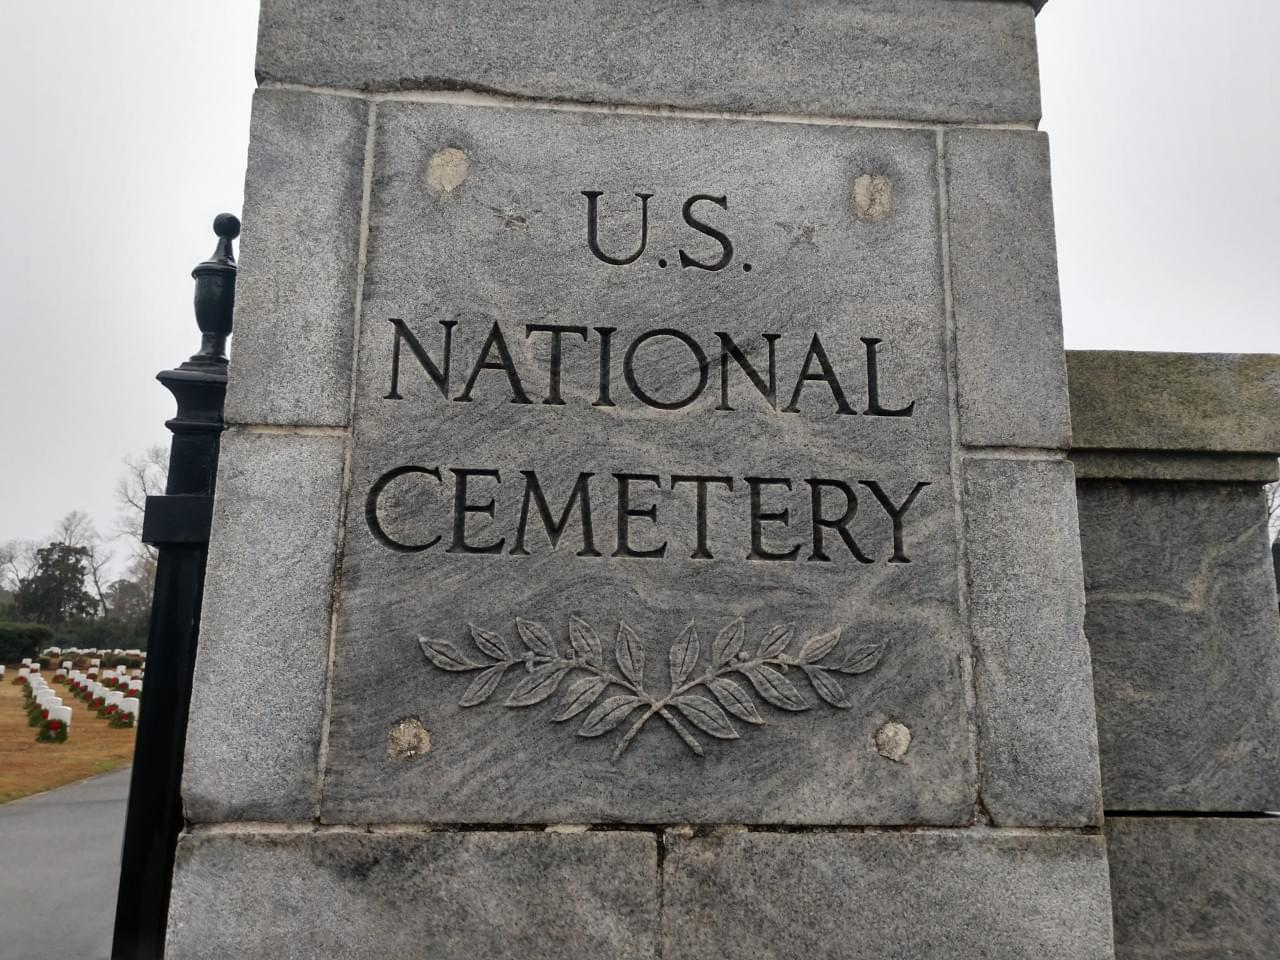 WSFL Visits the New Bern National Cemetary